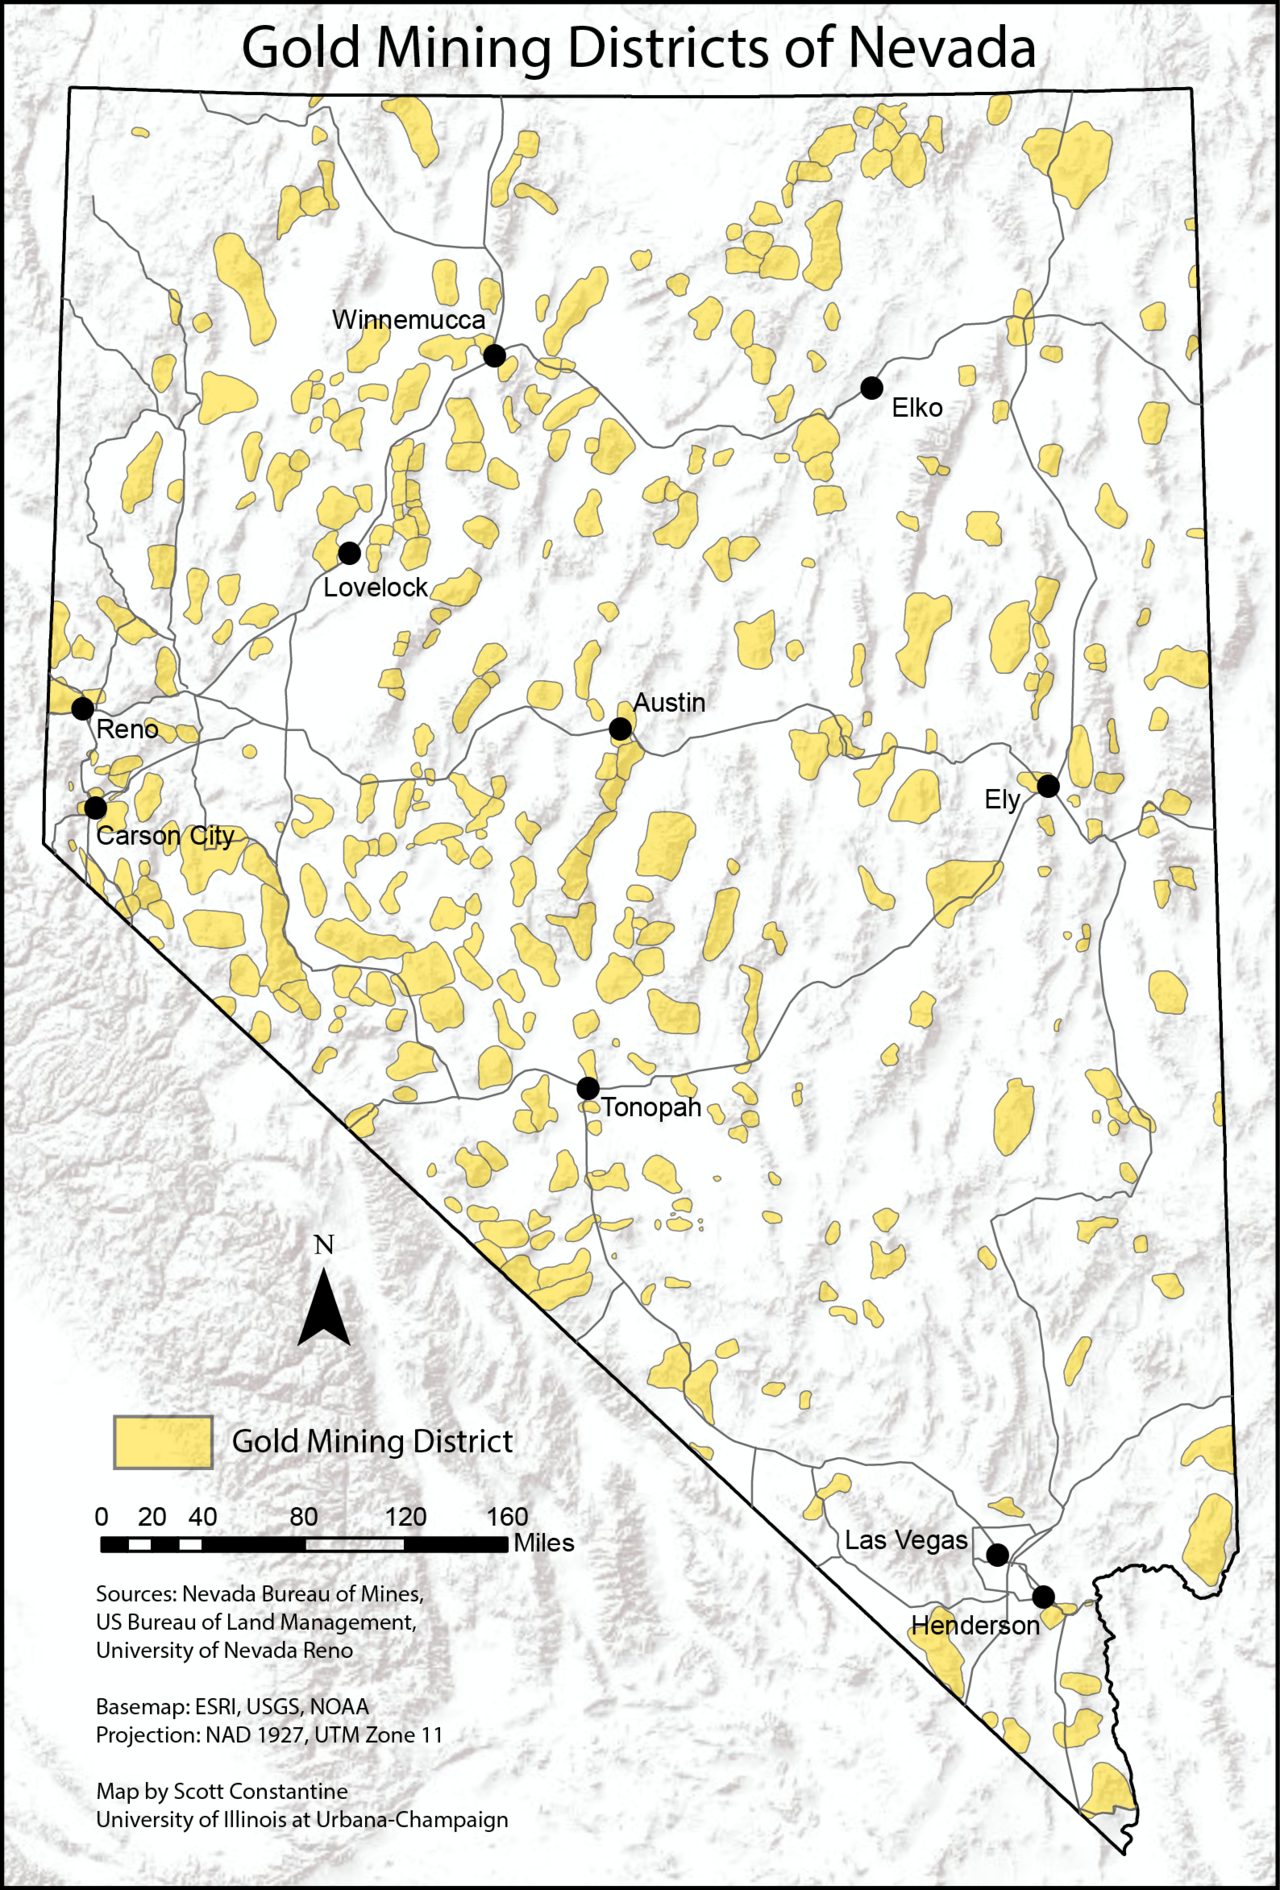 Nevada Mining Map Map of gold mining districts of Nevada, according to Nevada Bureau